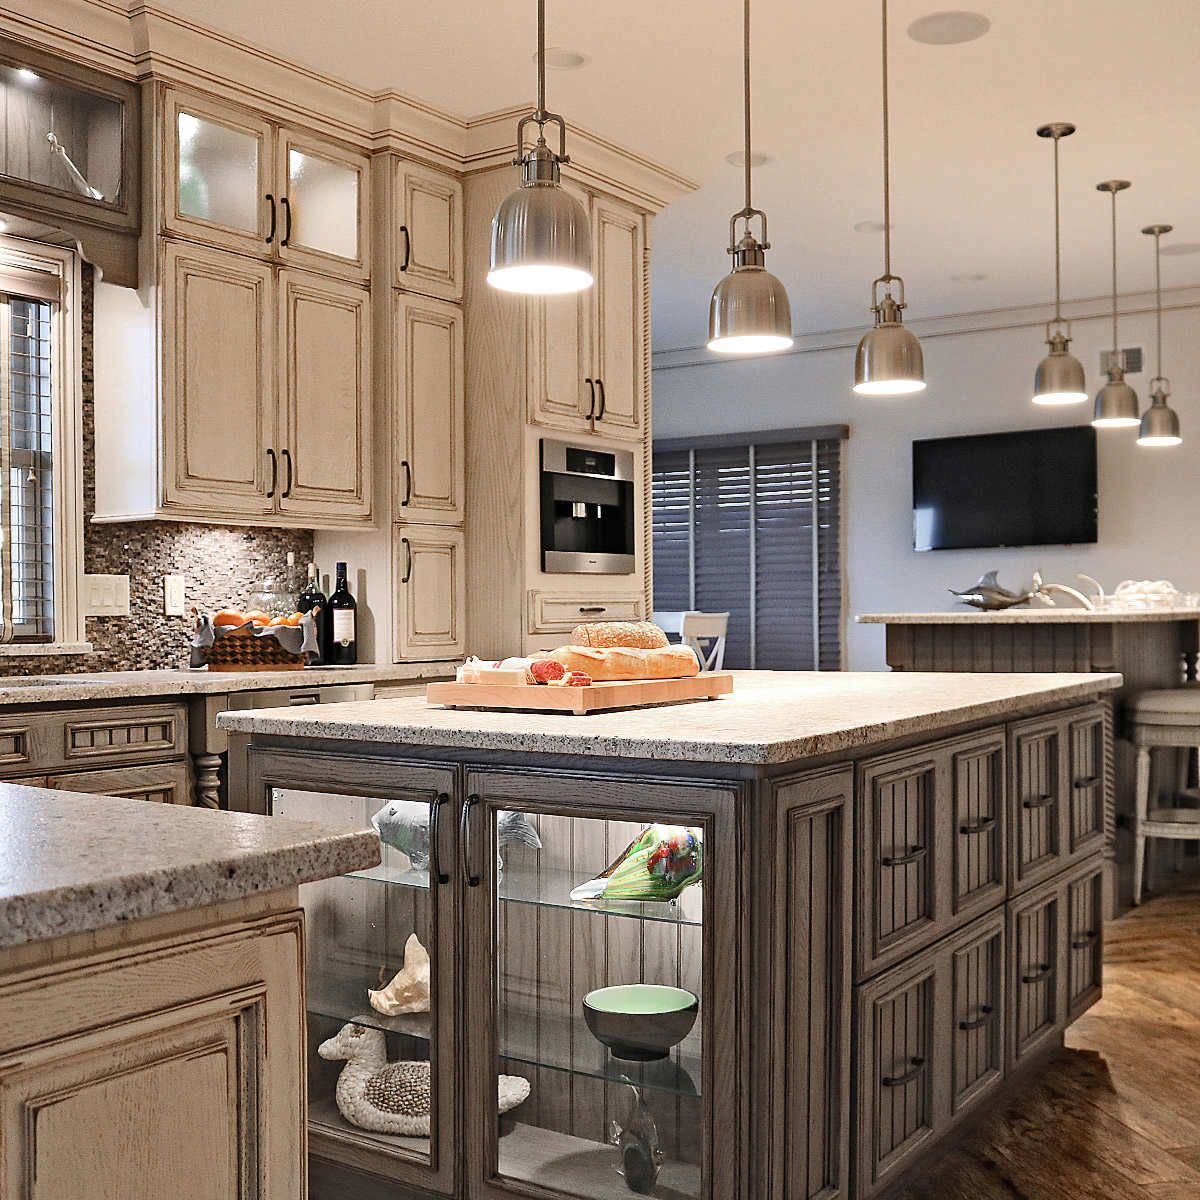 Full Custom Cabinets By Tuscan Hills Kitchens Bathsships In 6 8 Weeks Custom Kitchen Cabinets Tuscan Kitchen Kitchen Remodel Small